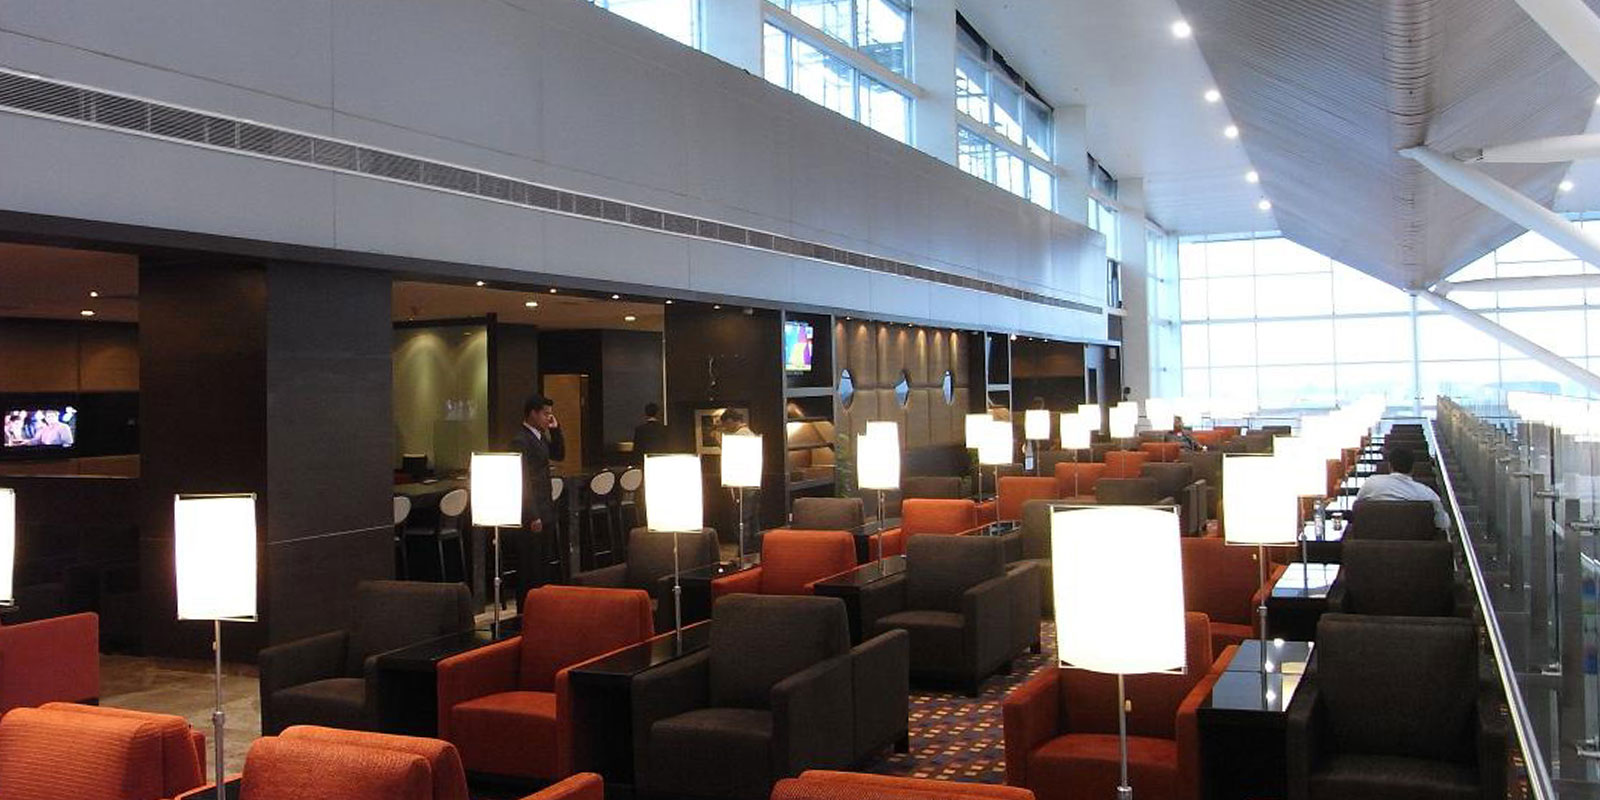 Airport lounge adds wings to your travel experience